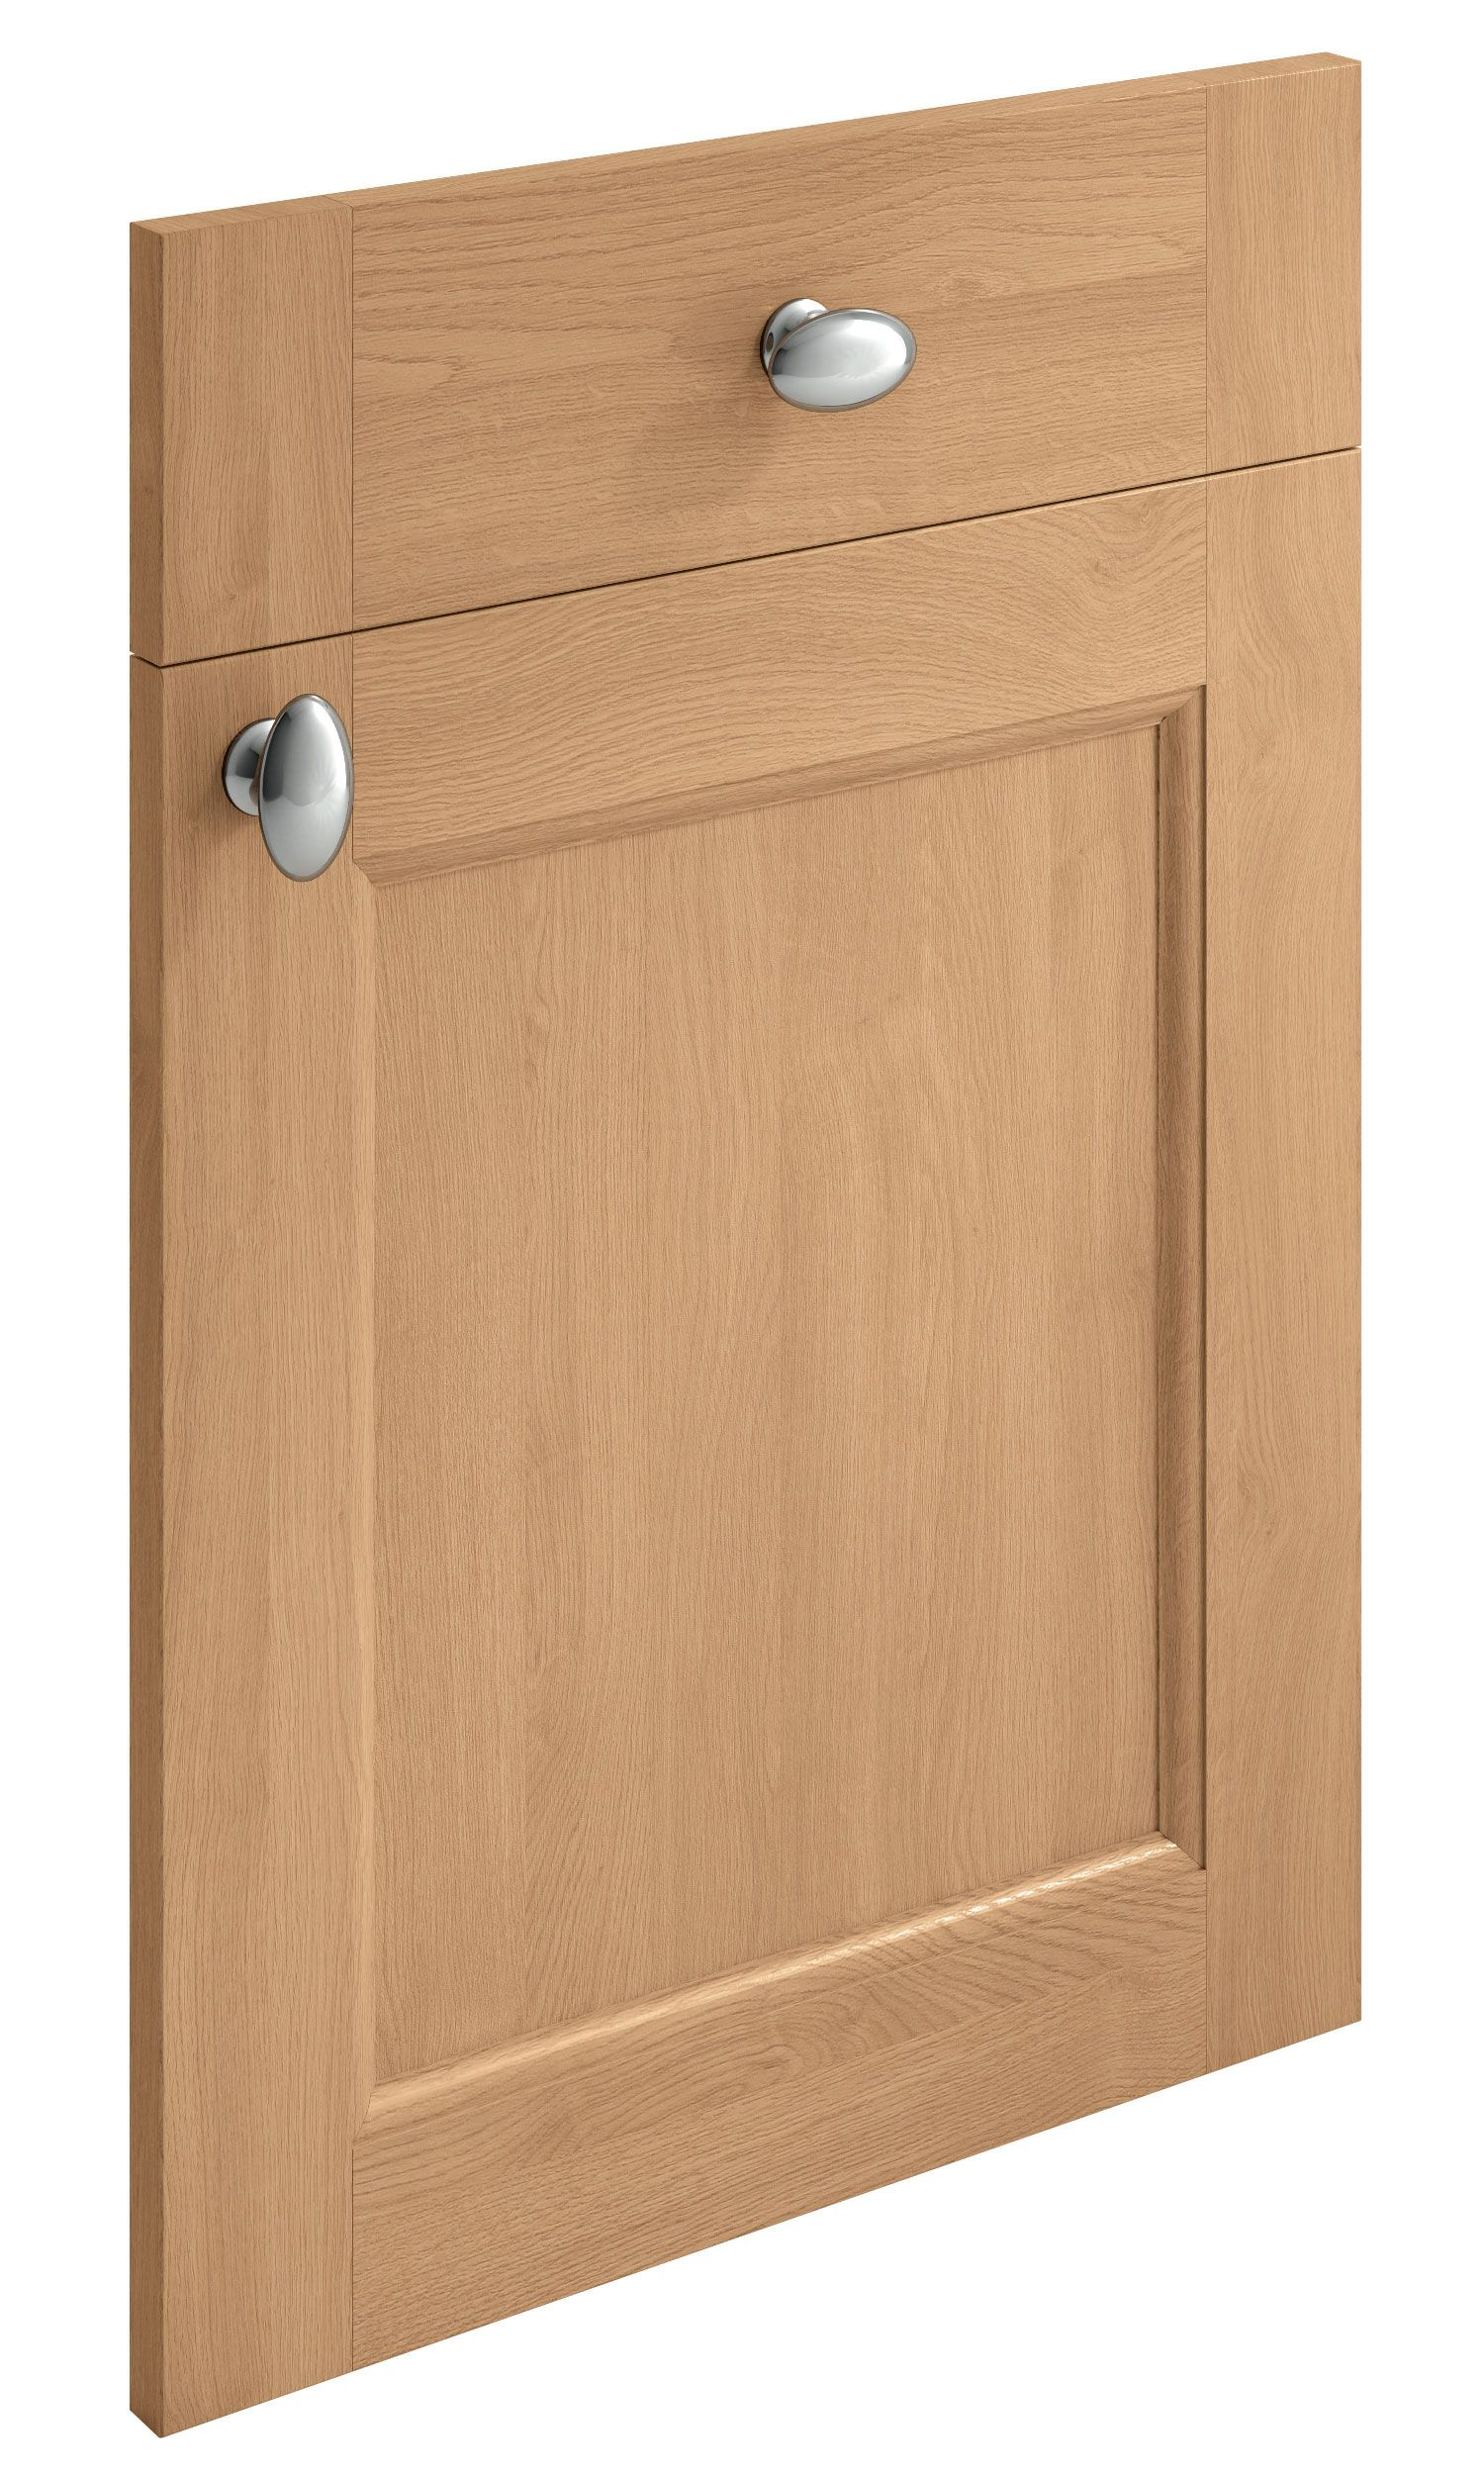 Replacement kitchen doors and drawer fronts